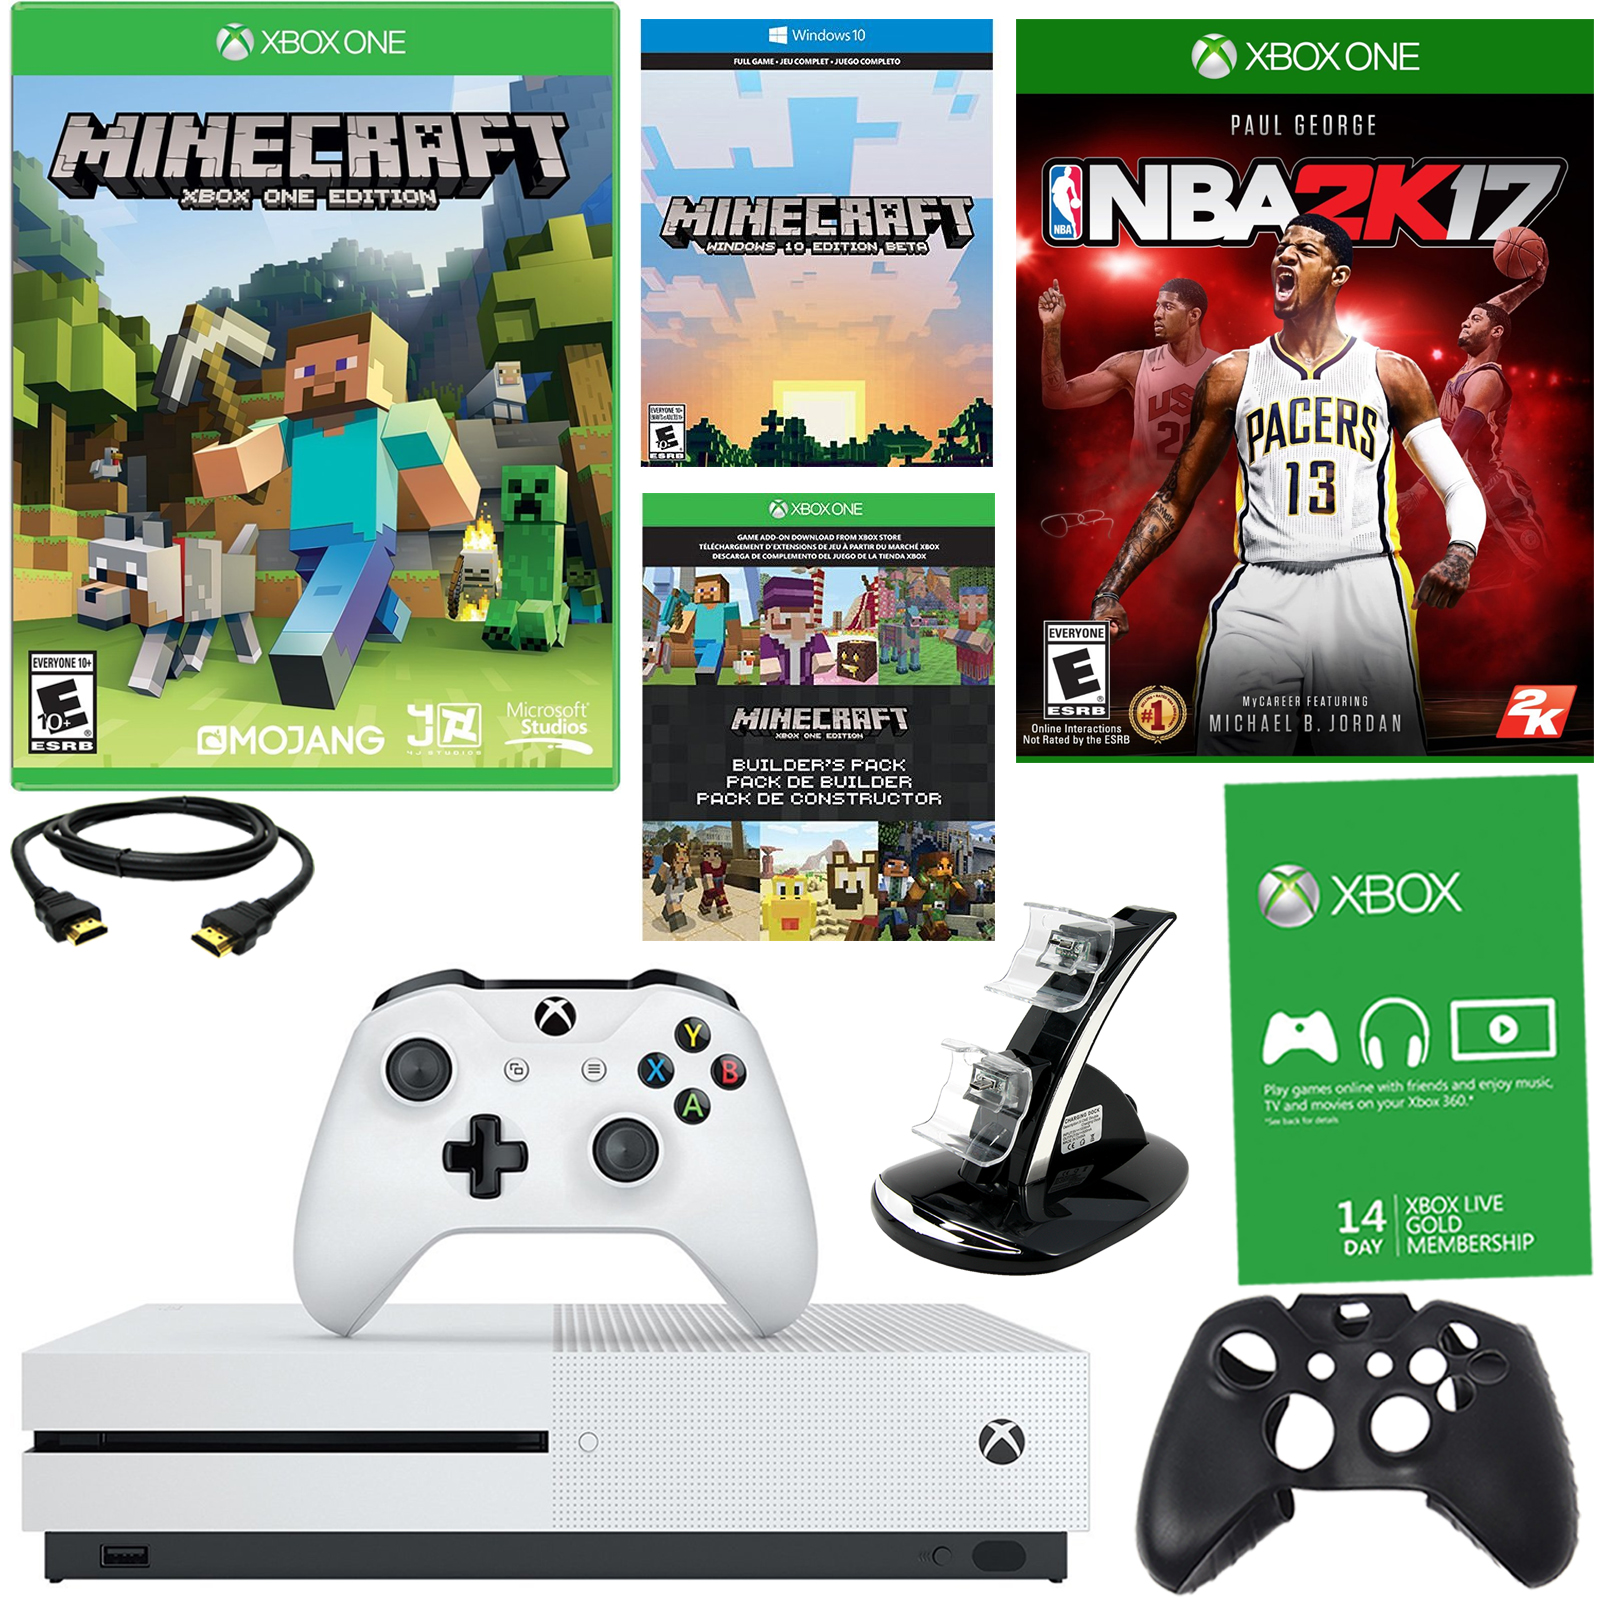 Xbox One S 500GB Minecraft Bundle With NBA 2K17 and Accessories En VeoyCompro